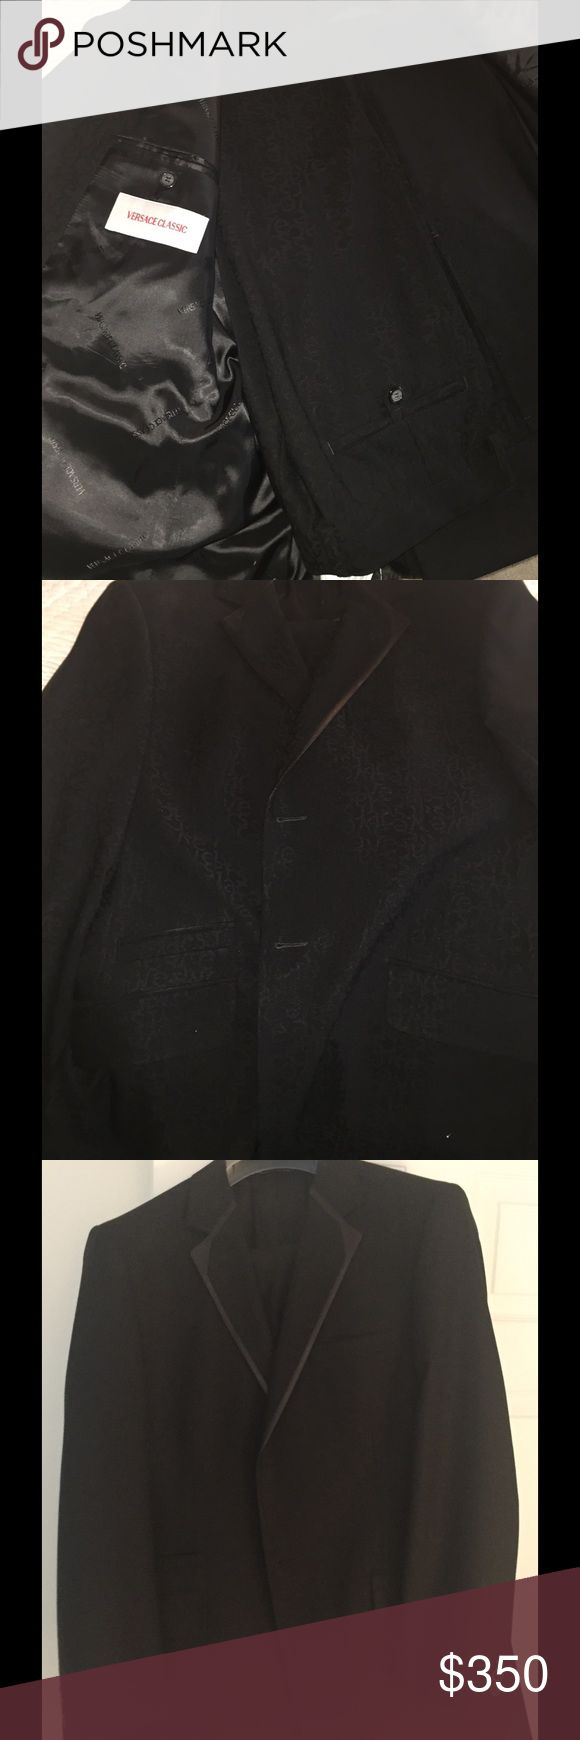 Versace Classic Tuxedo limited edition Classic Versace tuxedo with subtle branded embossed multiple Versace logo on exterior and inside of suit coat-- limited edition--worn only once Versace Suits & Blazers Tuxedos